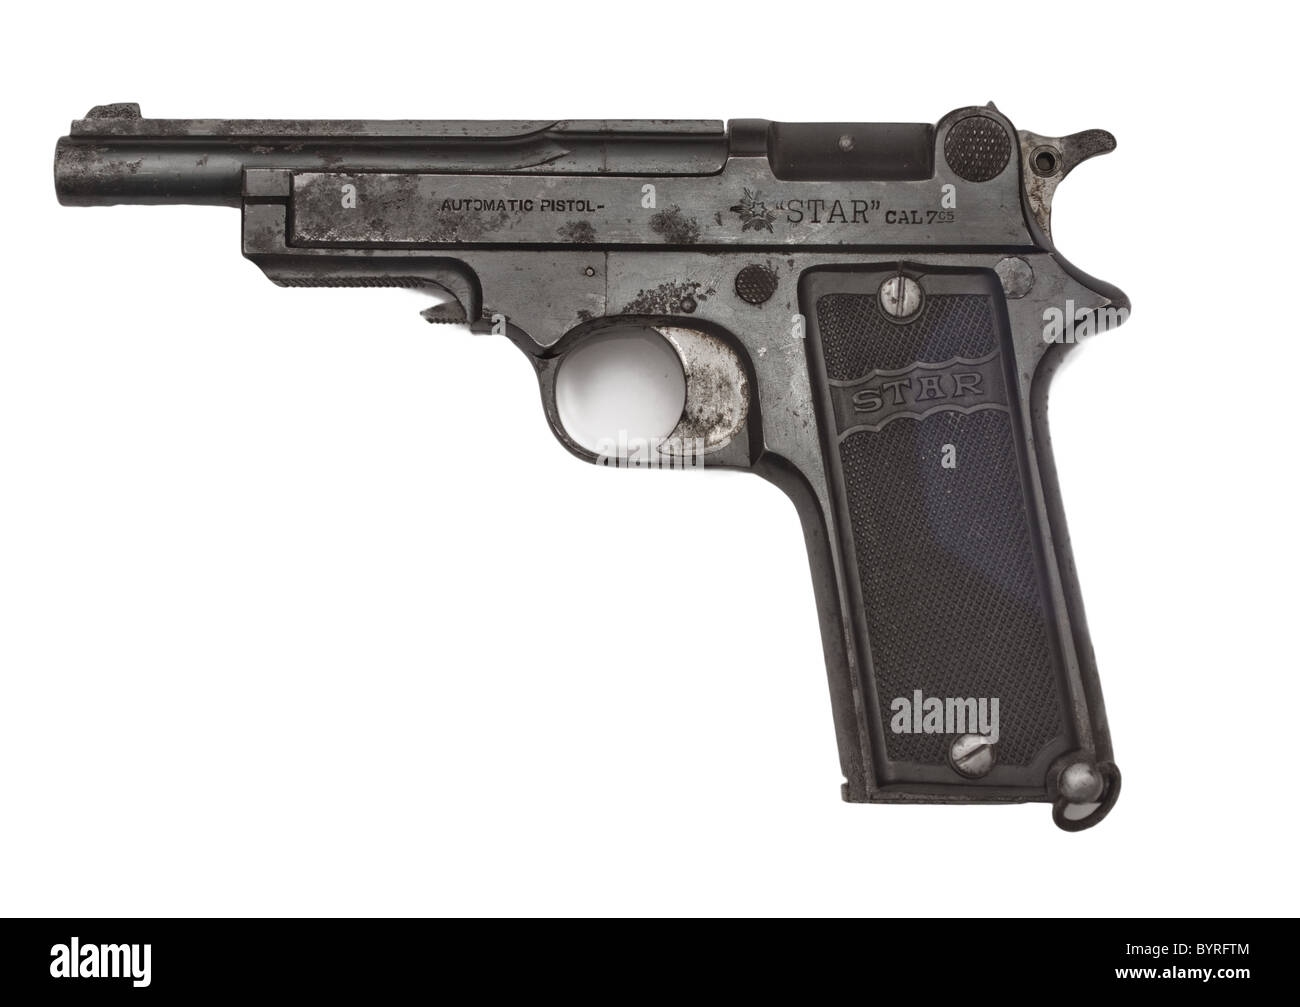 Pistol 'Star' model  1919, 6.35mm  used in the Spanish civil War by the republicans - Stock Image